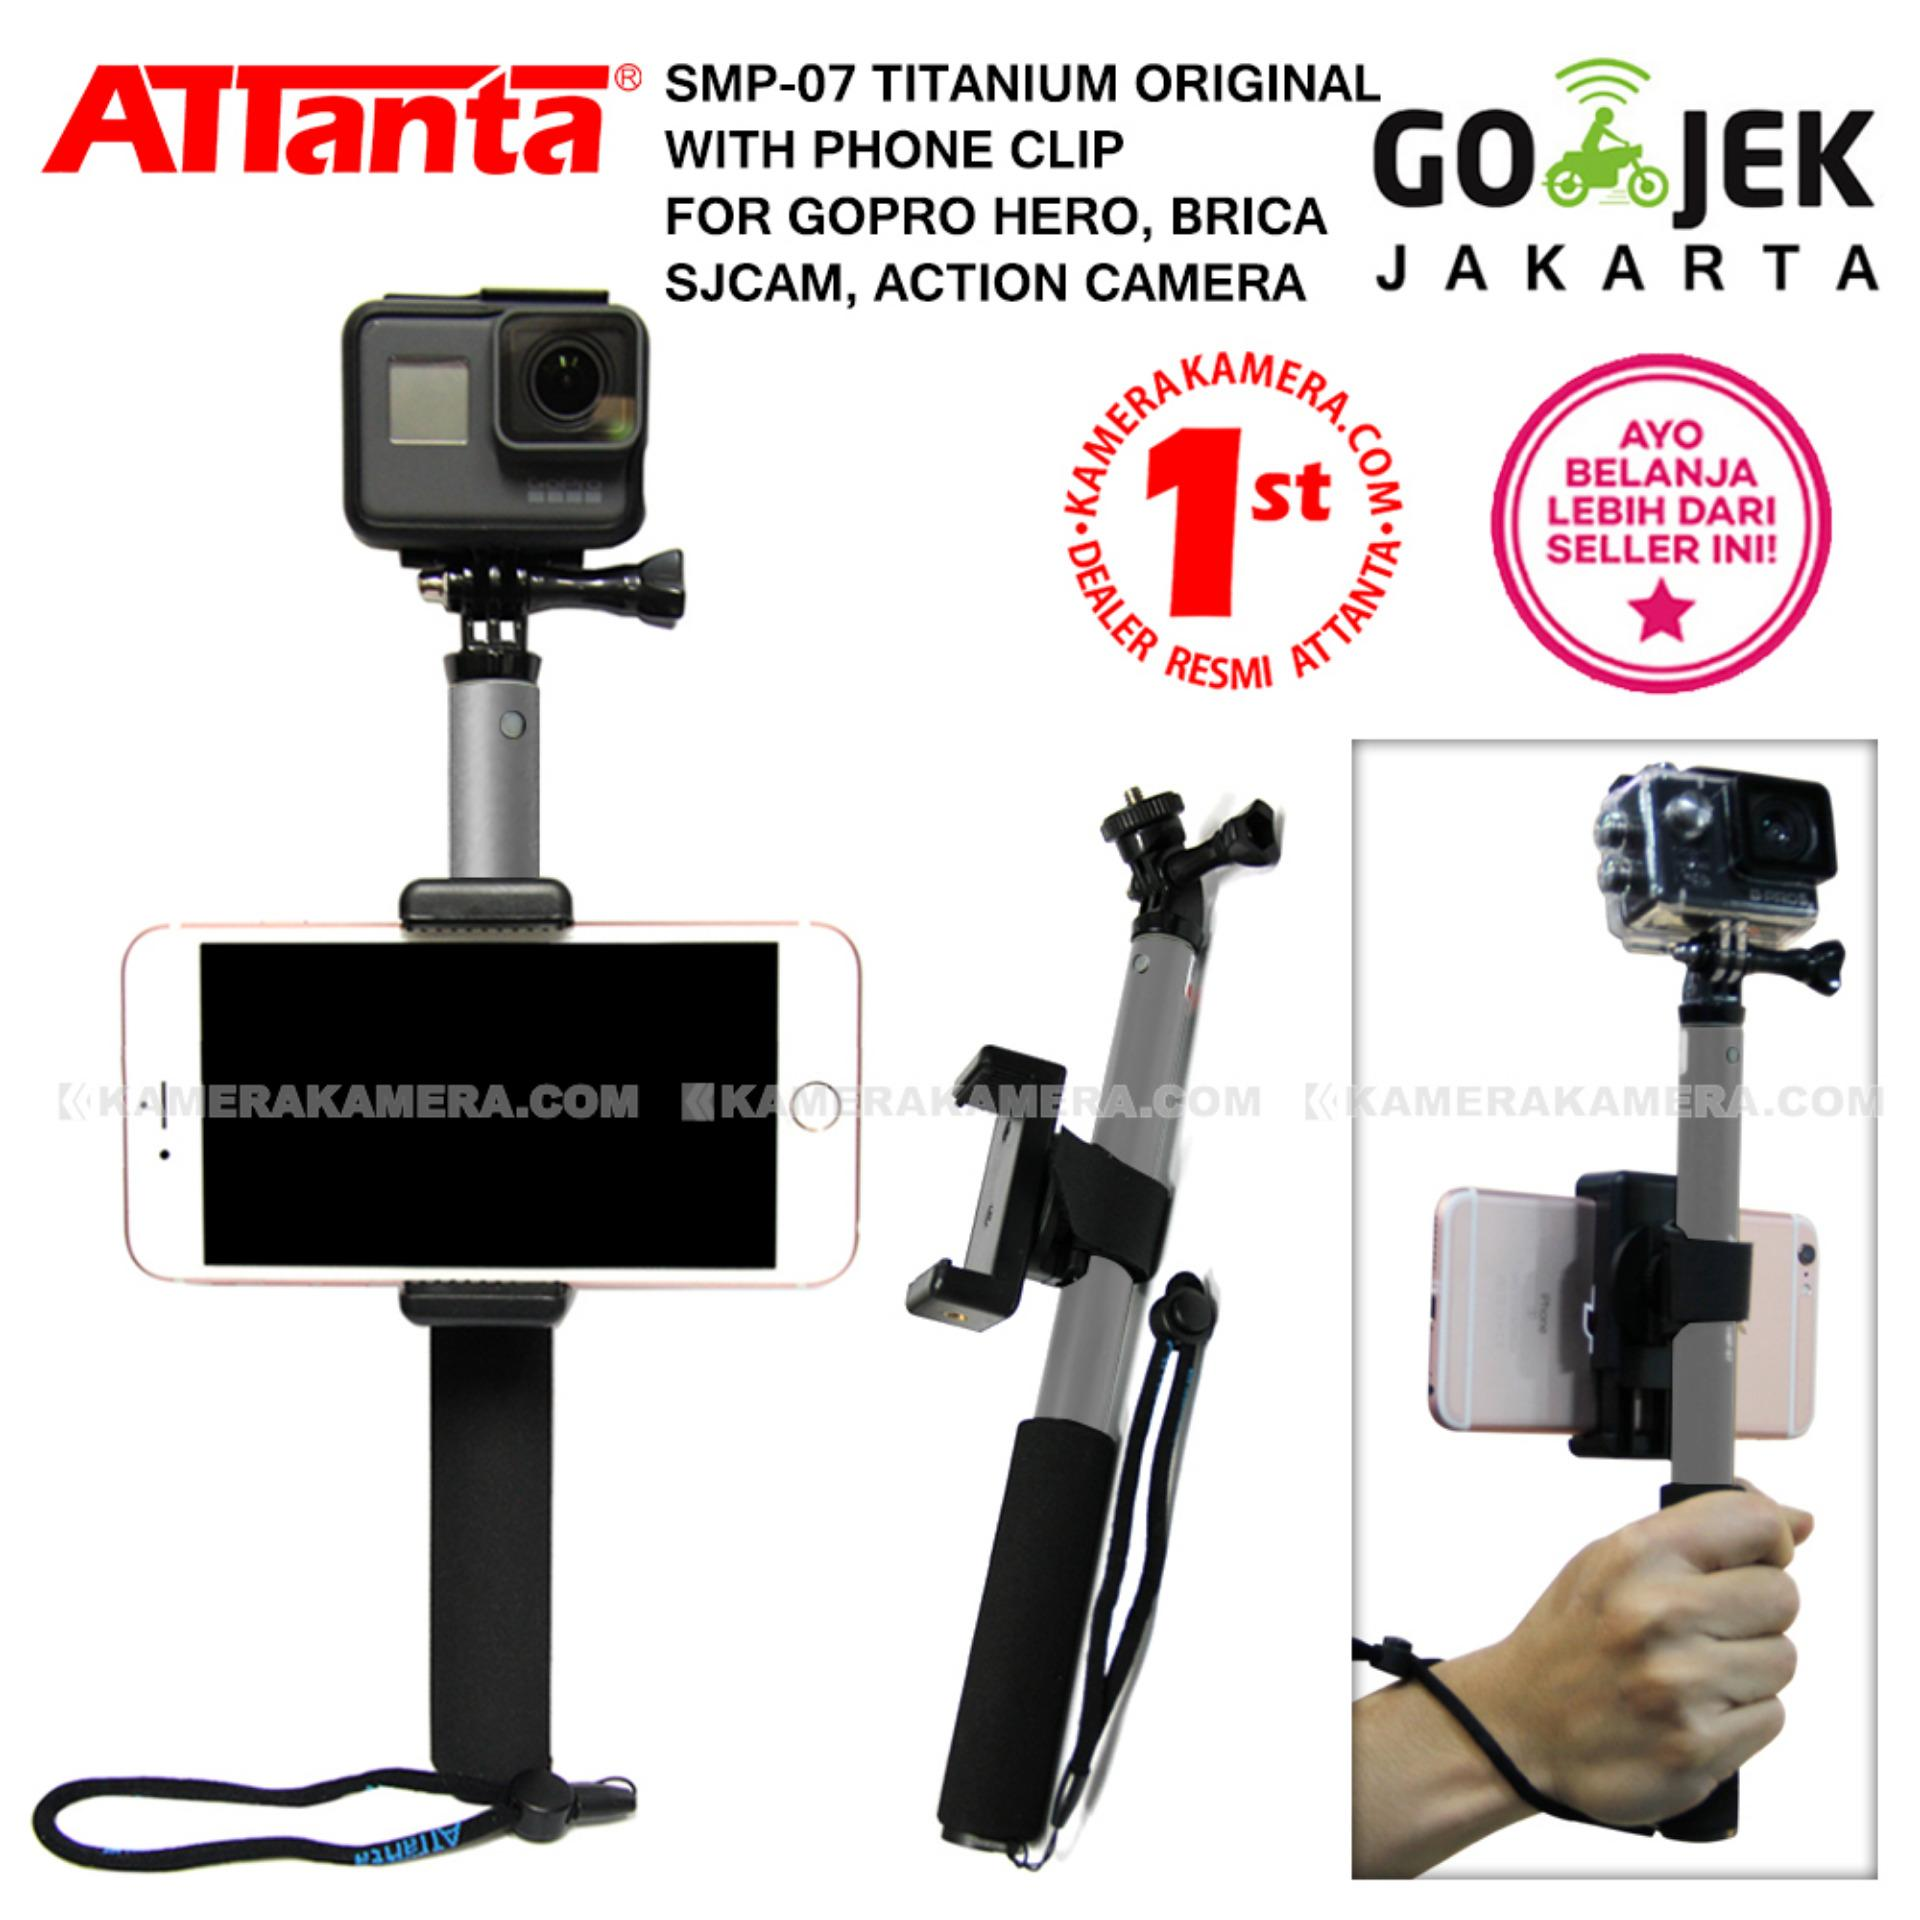 Jual Produk Attanta Termurah Terbaik Universal Clamp Holder U Hp Tongsis Smp 07 Original Titanium Phone Clip For Gopro Action Camera